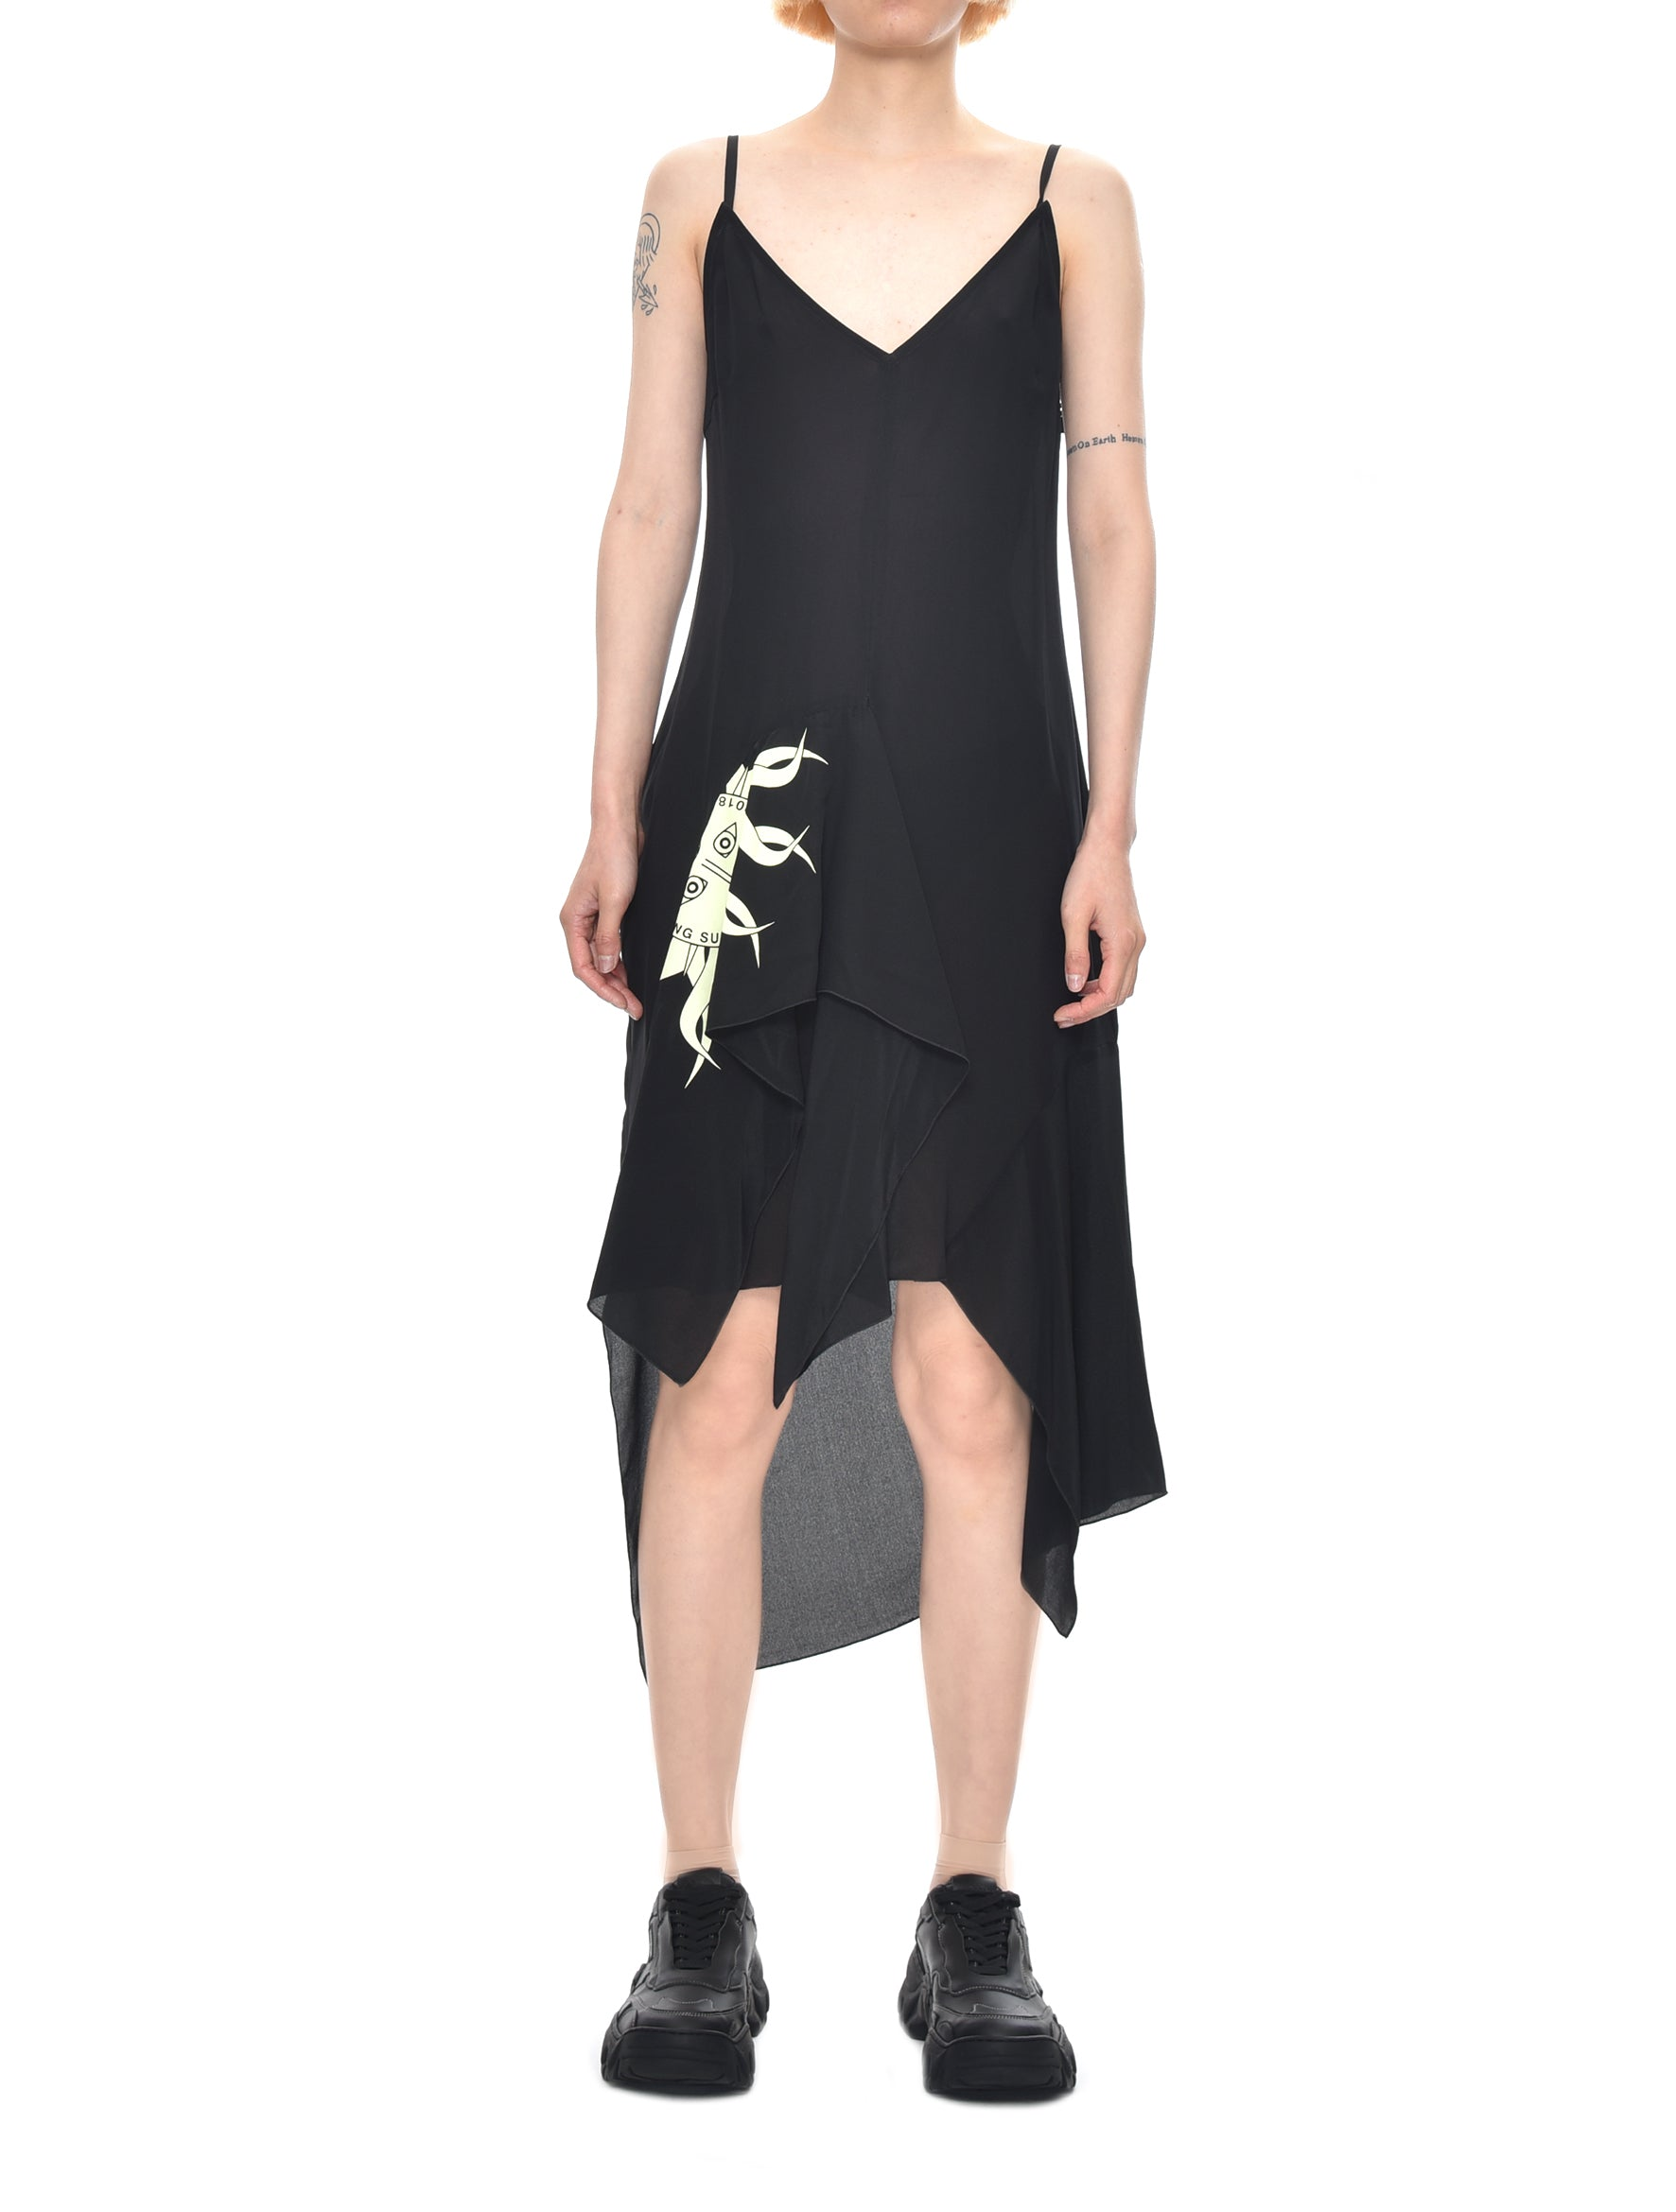 Axis Mundi Shirt Dress